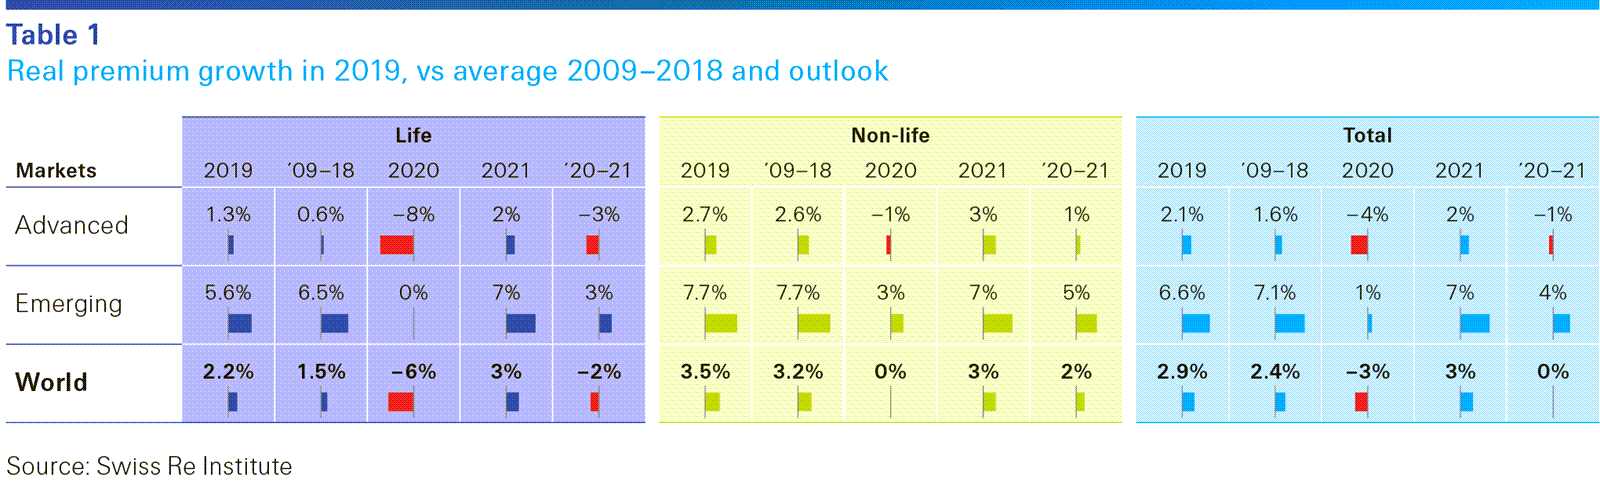 This infographic shows real premium growth in 2019 vs 2009 and outlook sigma 4/2020 extra